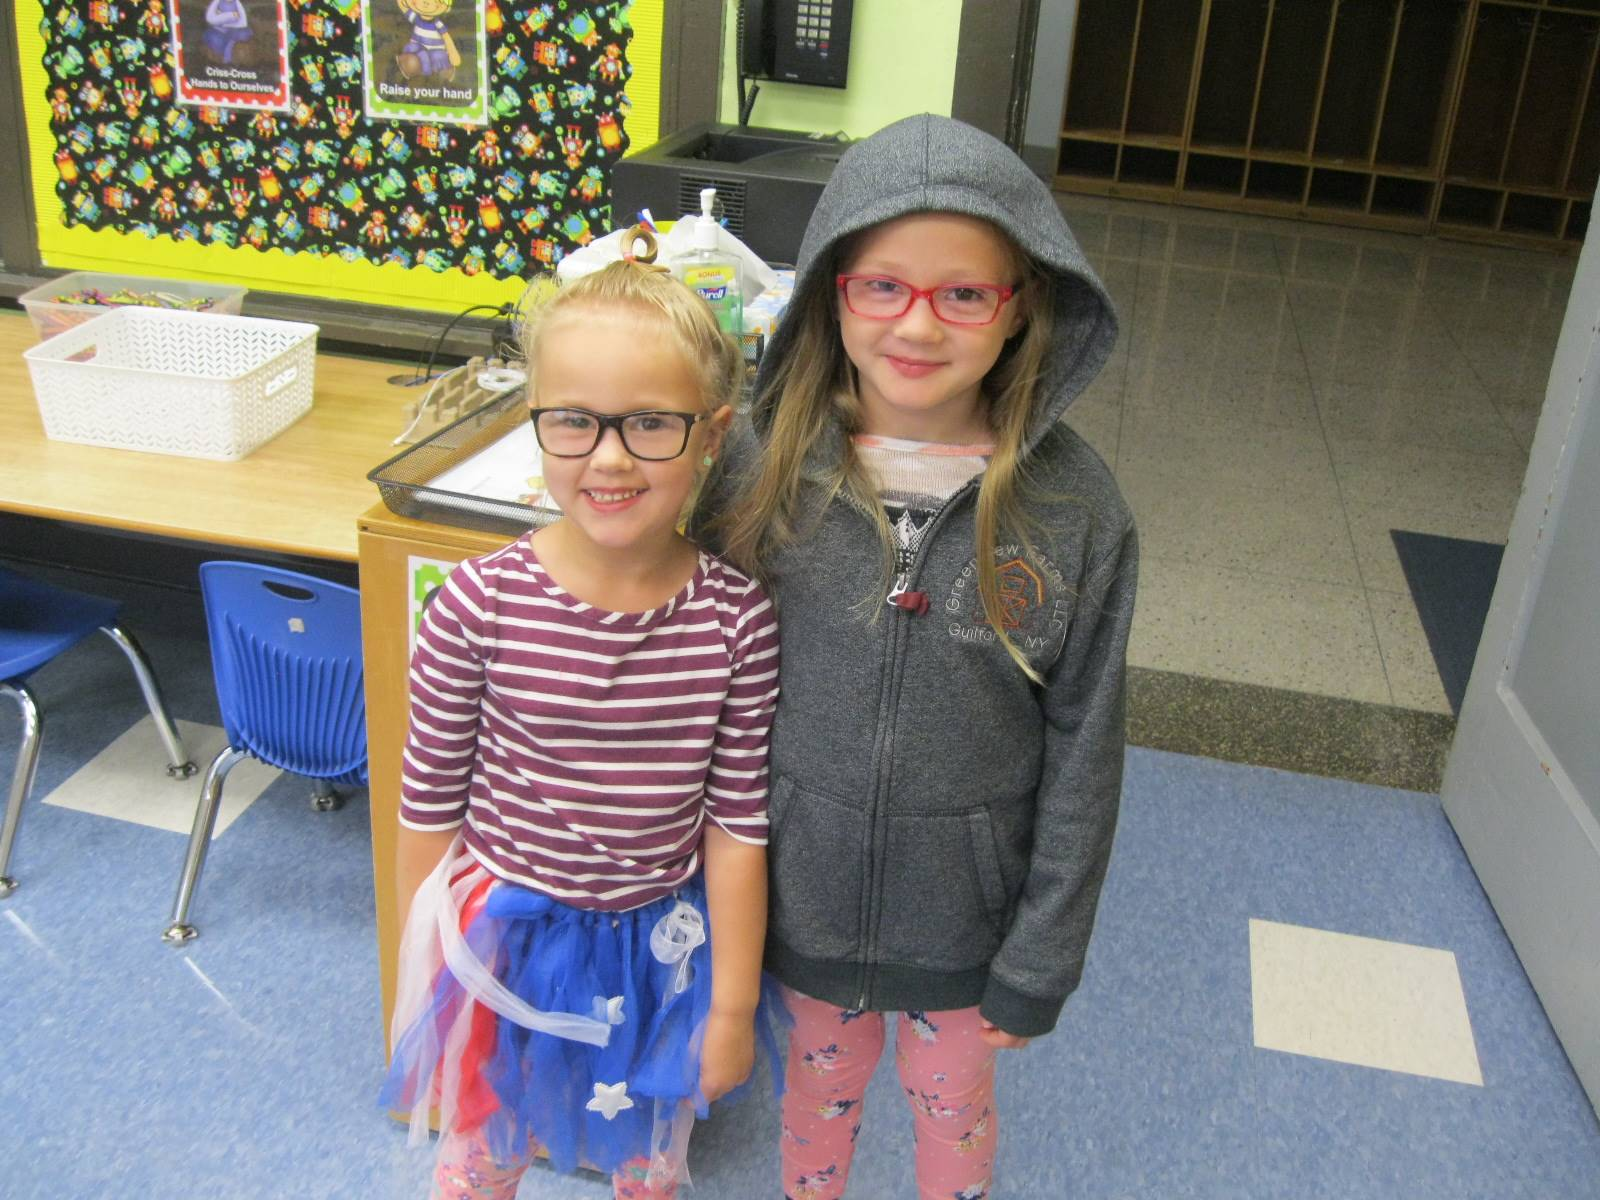 2 students for crazy dress up day.